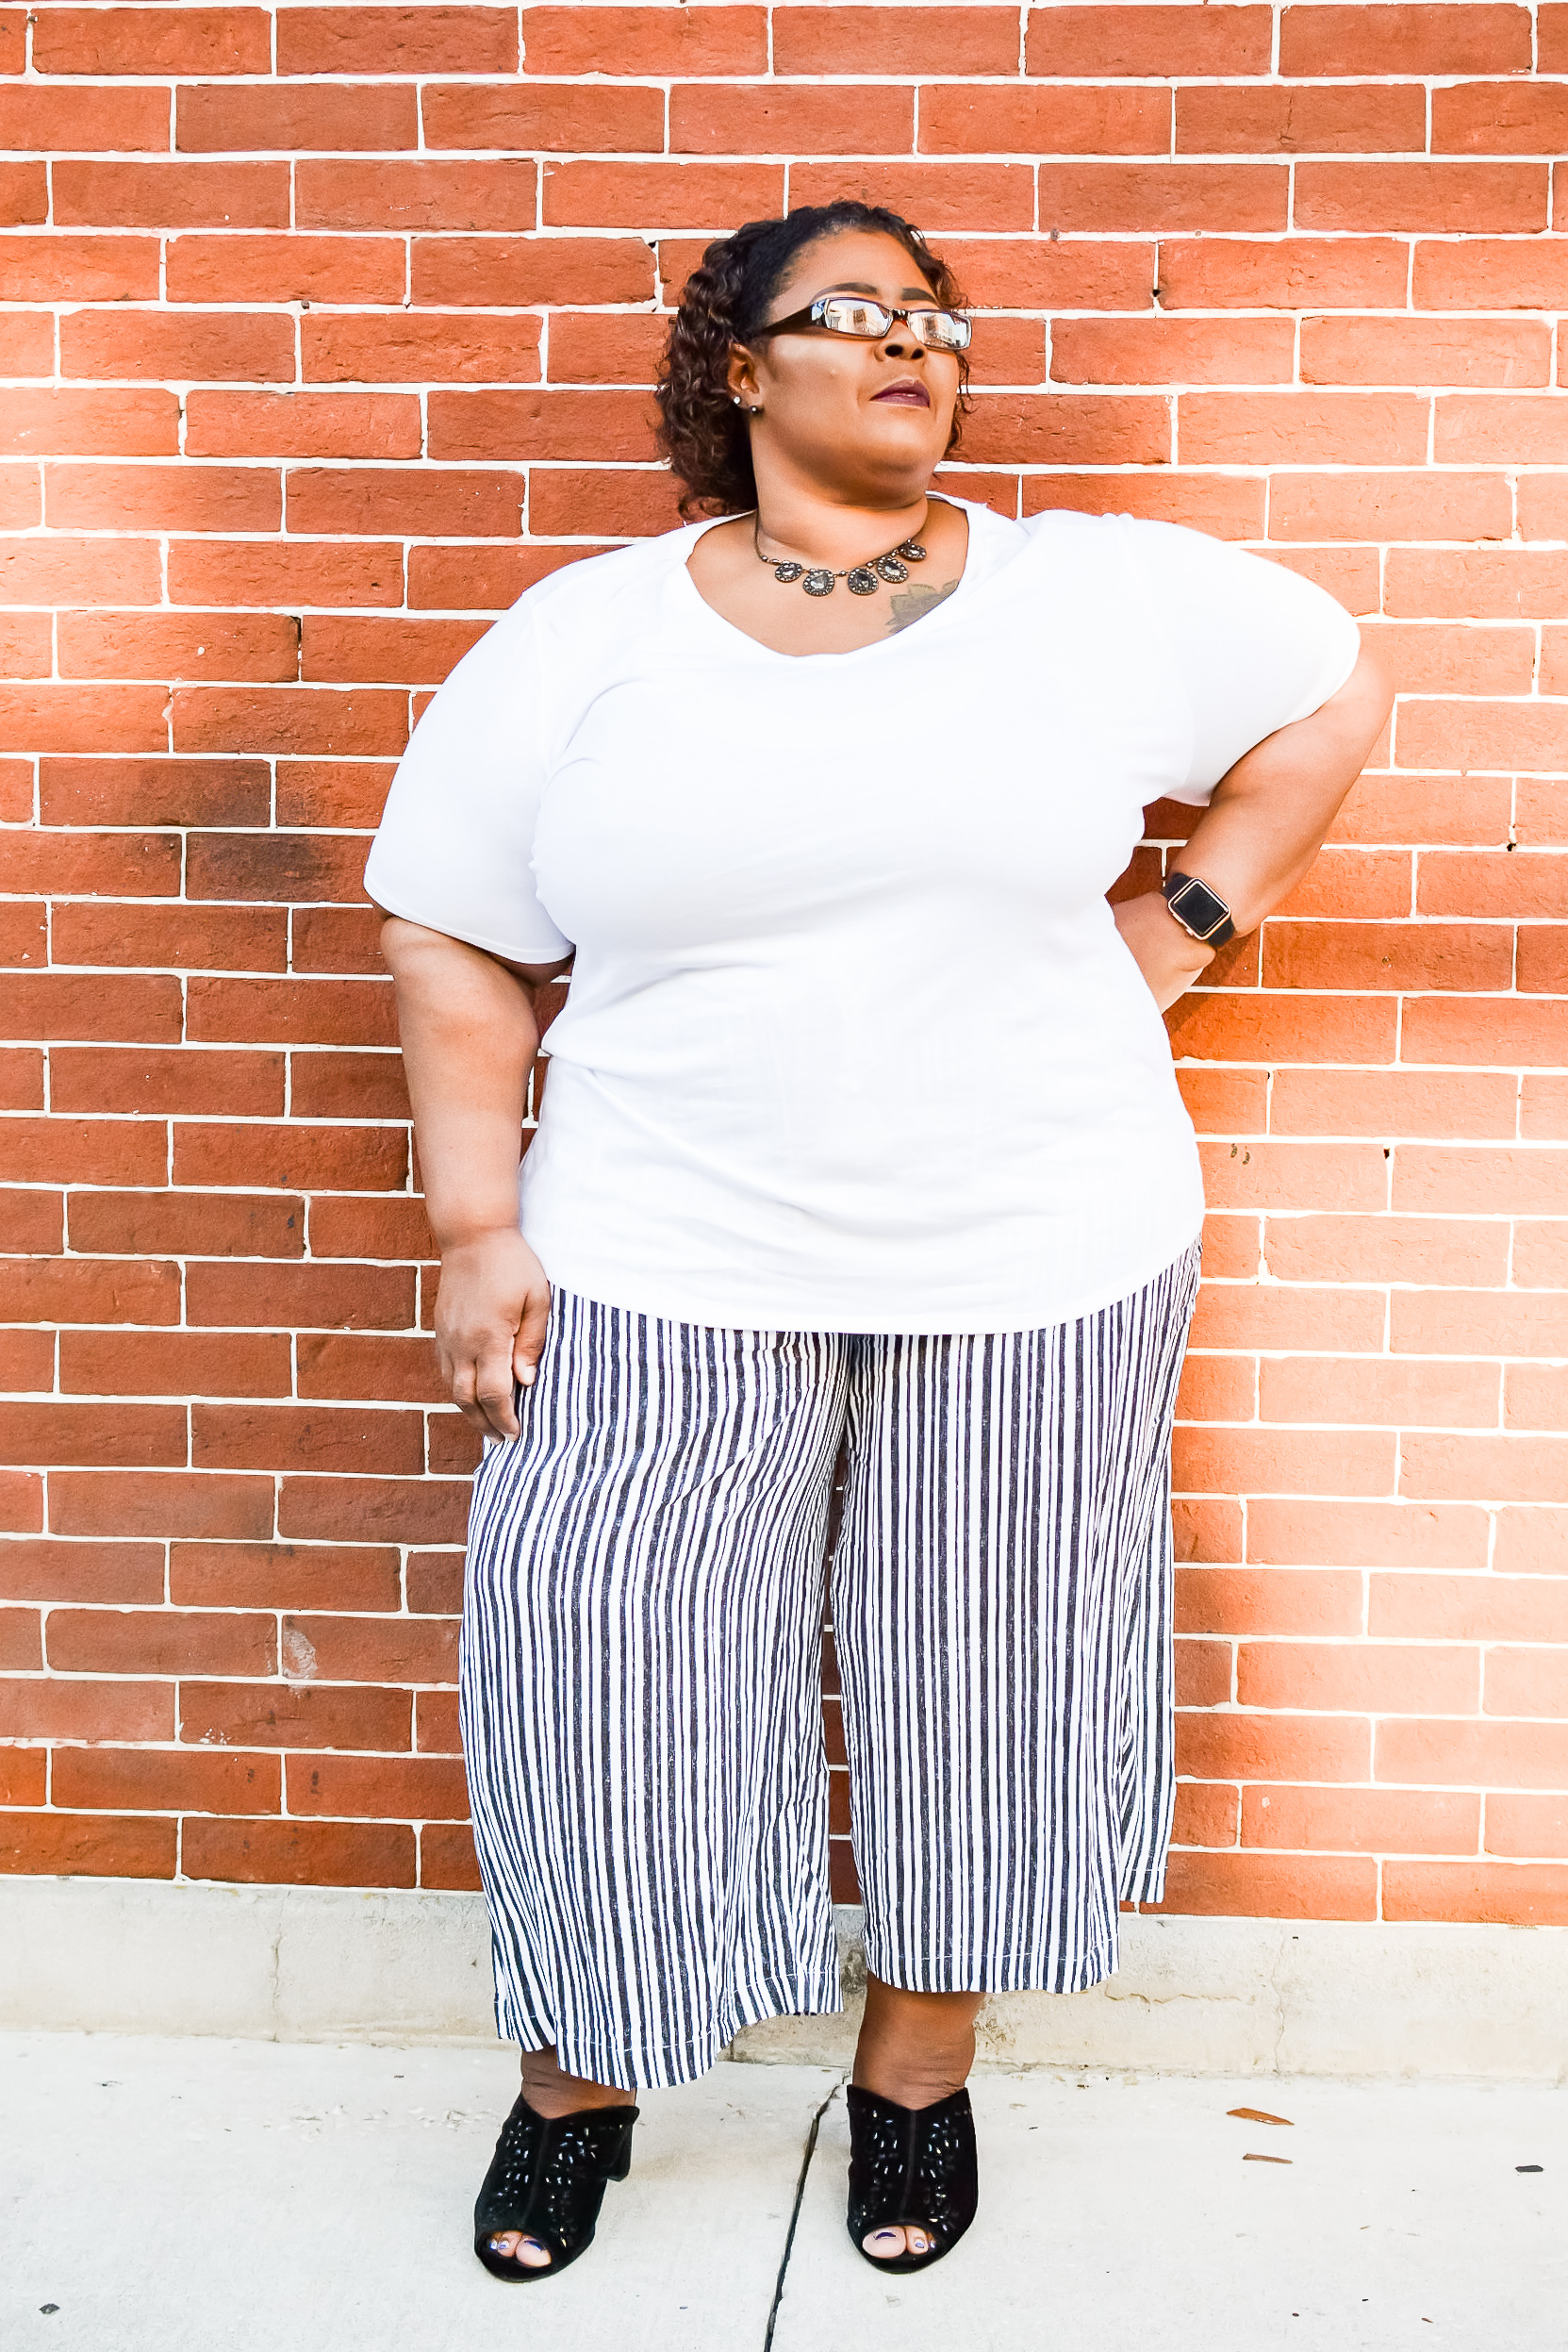 Plus Size Classic Fashions from Walmart